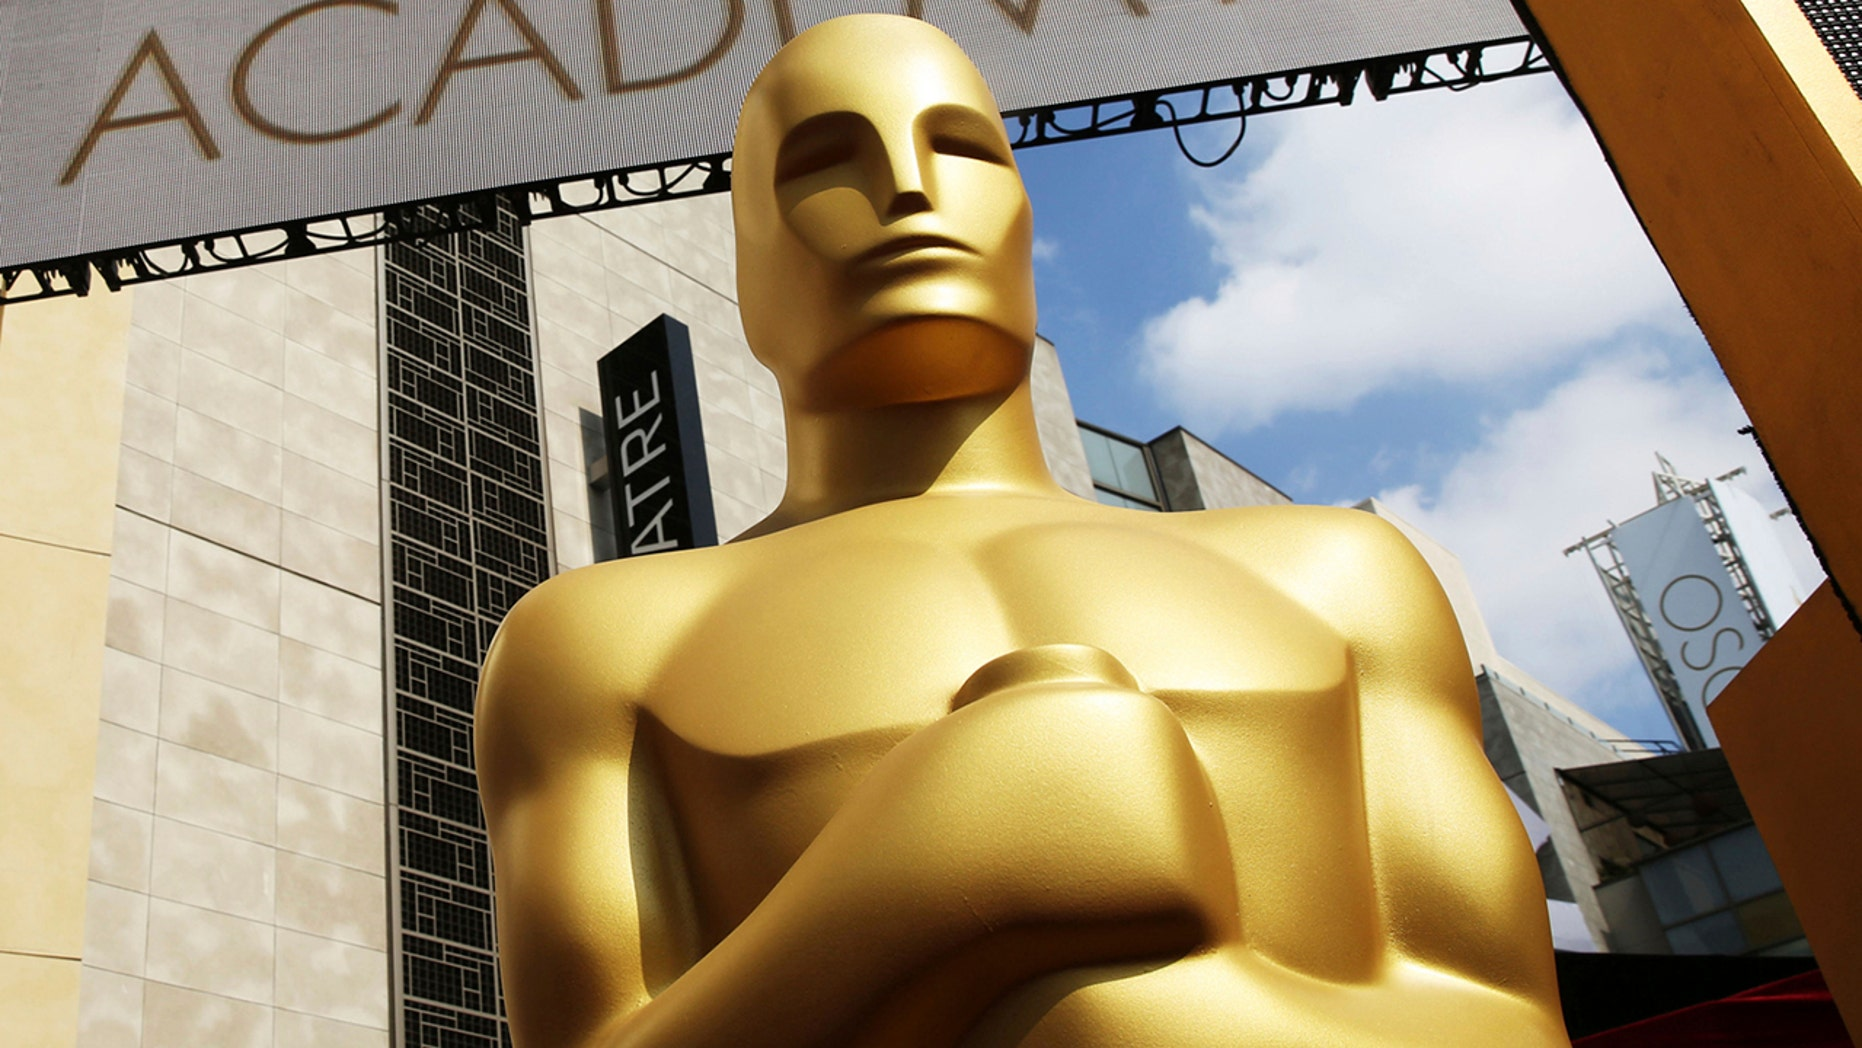 The Justice Department has warned the Academy of Motion Picture Arts and Sciences about potential antitrust and competition law violations.